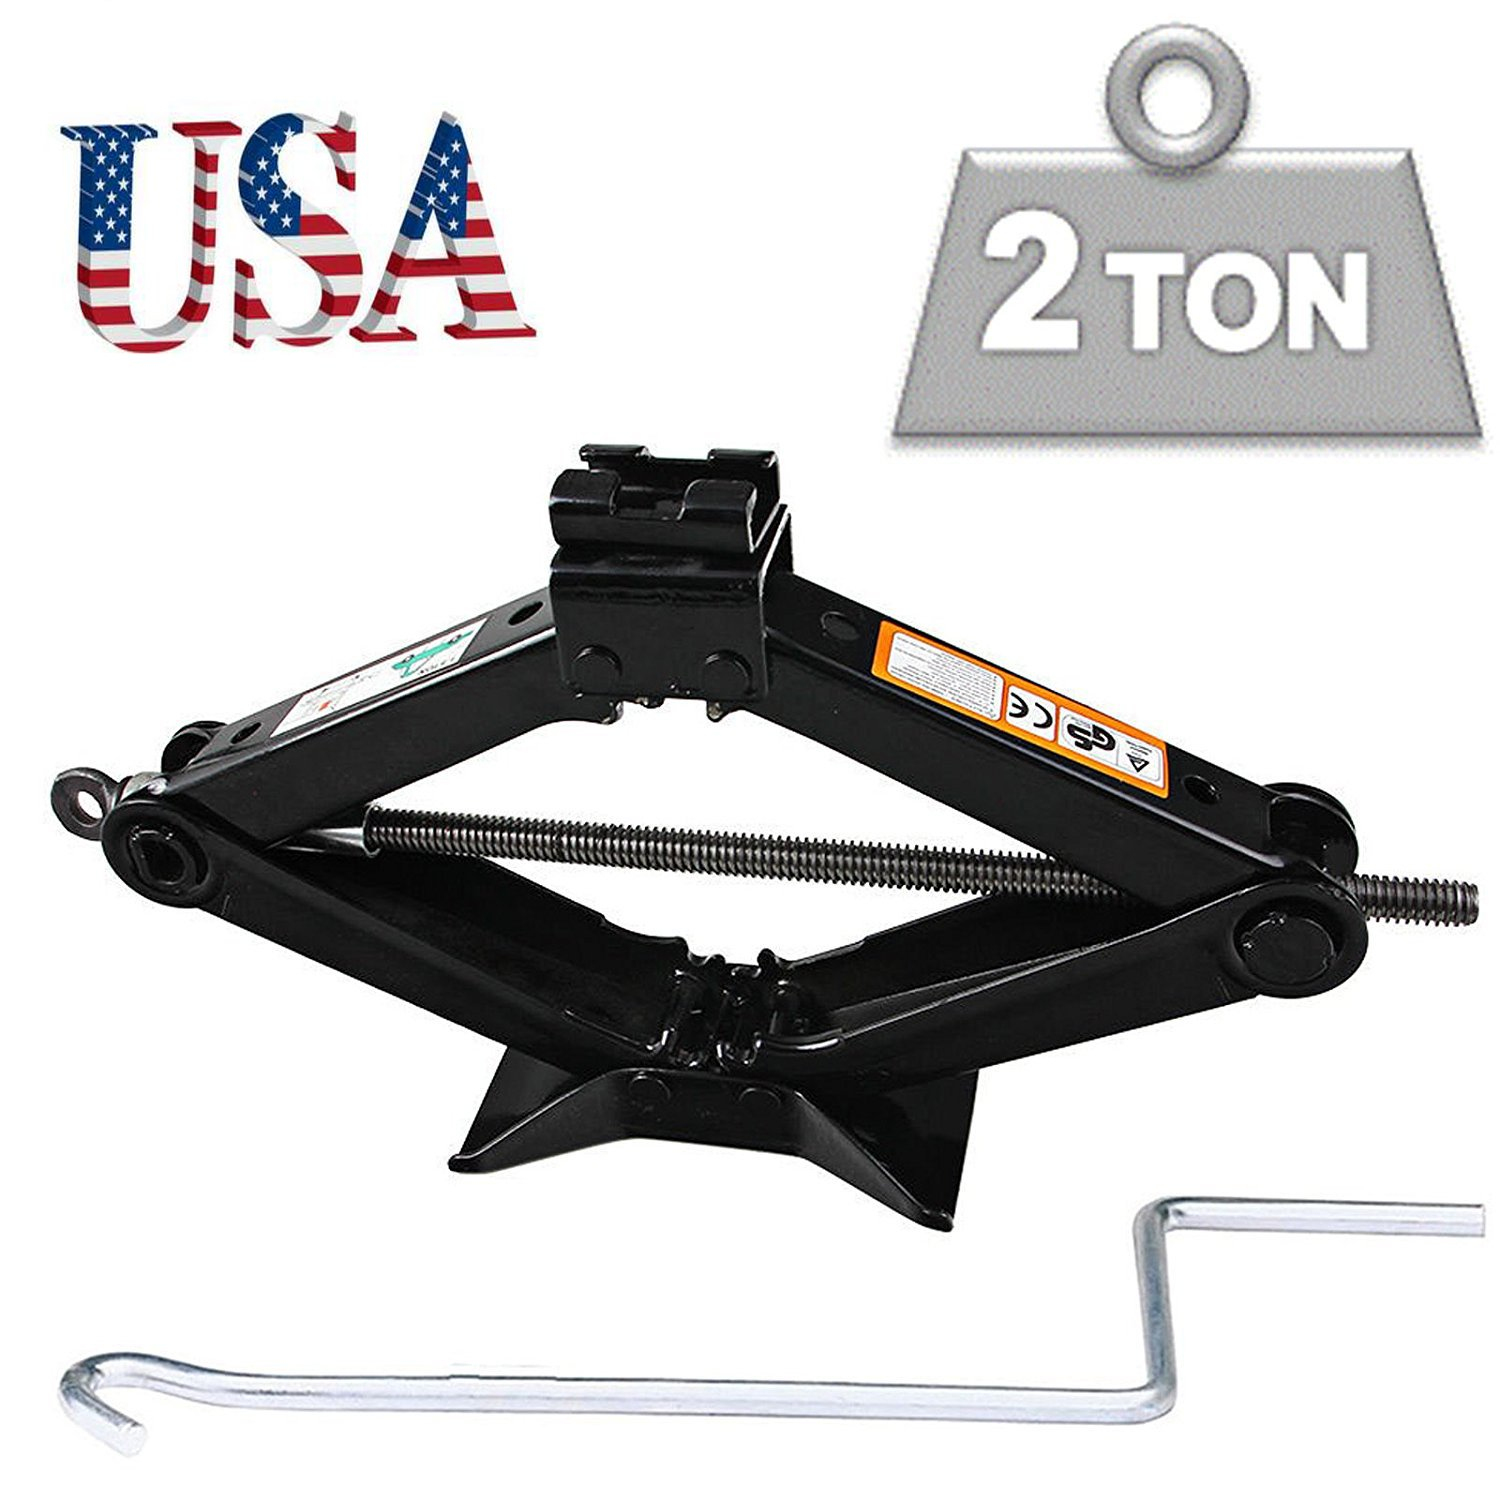 Rustproof Universal Scissor Jack 2 Tonne Wind Up Lifter Floor Jack Tyre Repair Tool with Crank Speed Handle for Car Van BMW/Ford/Audi